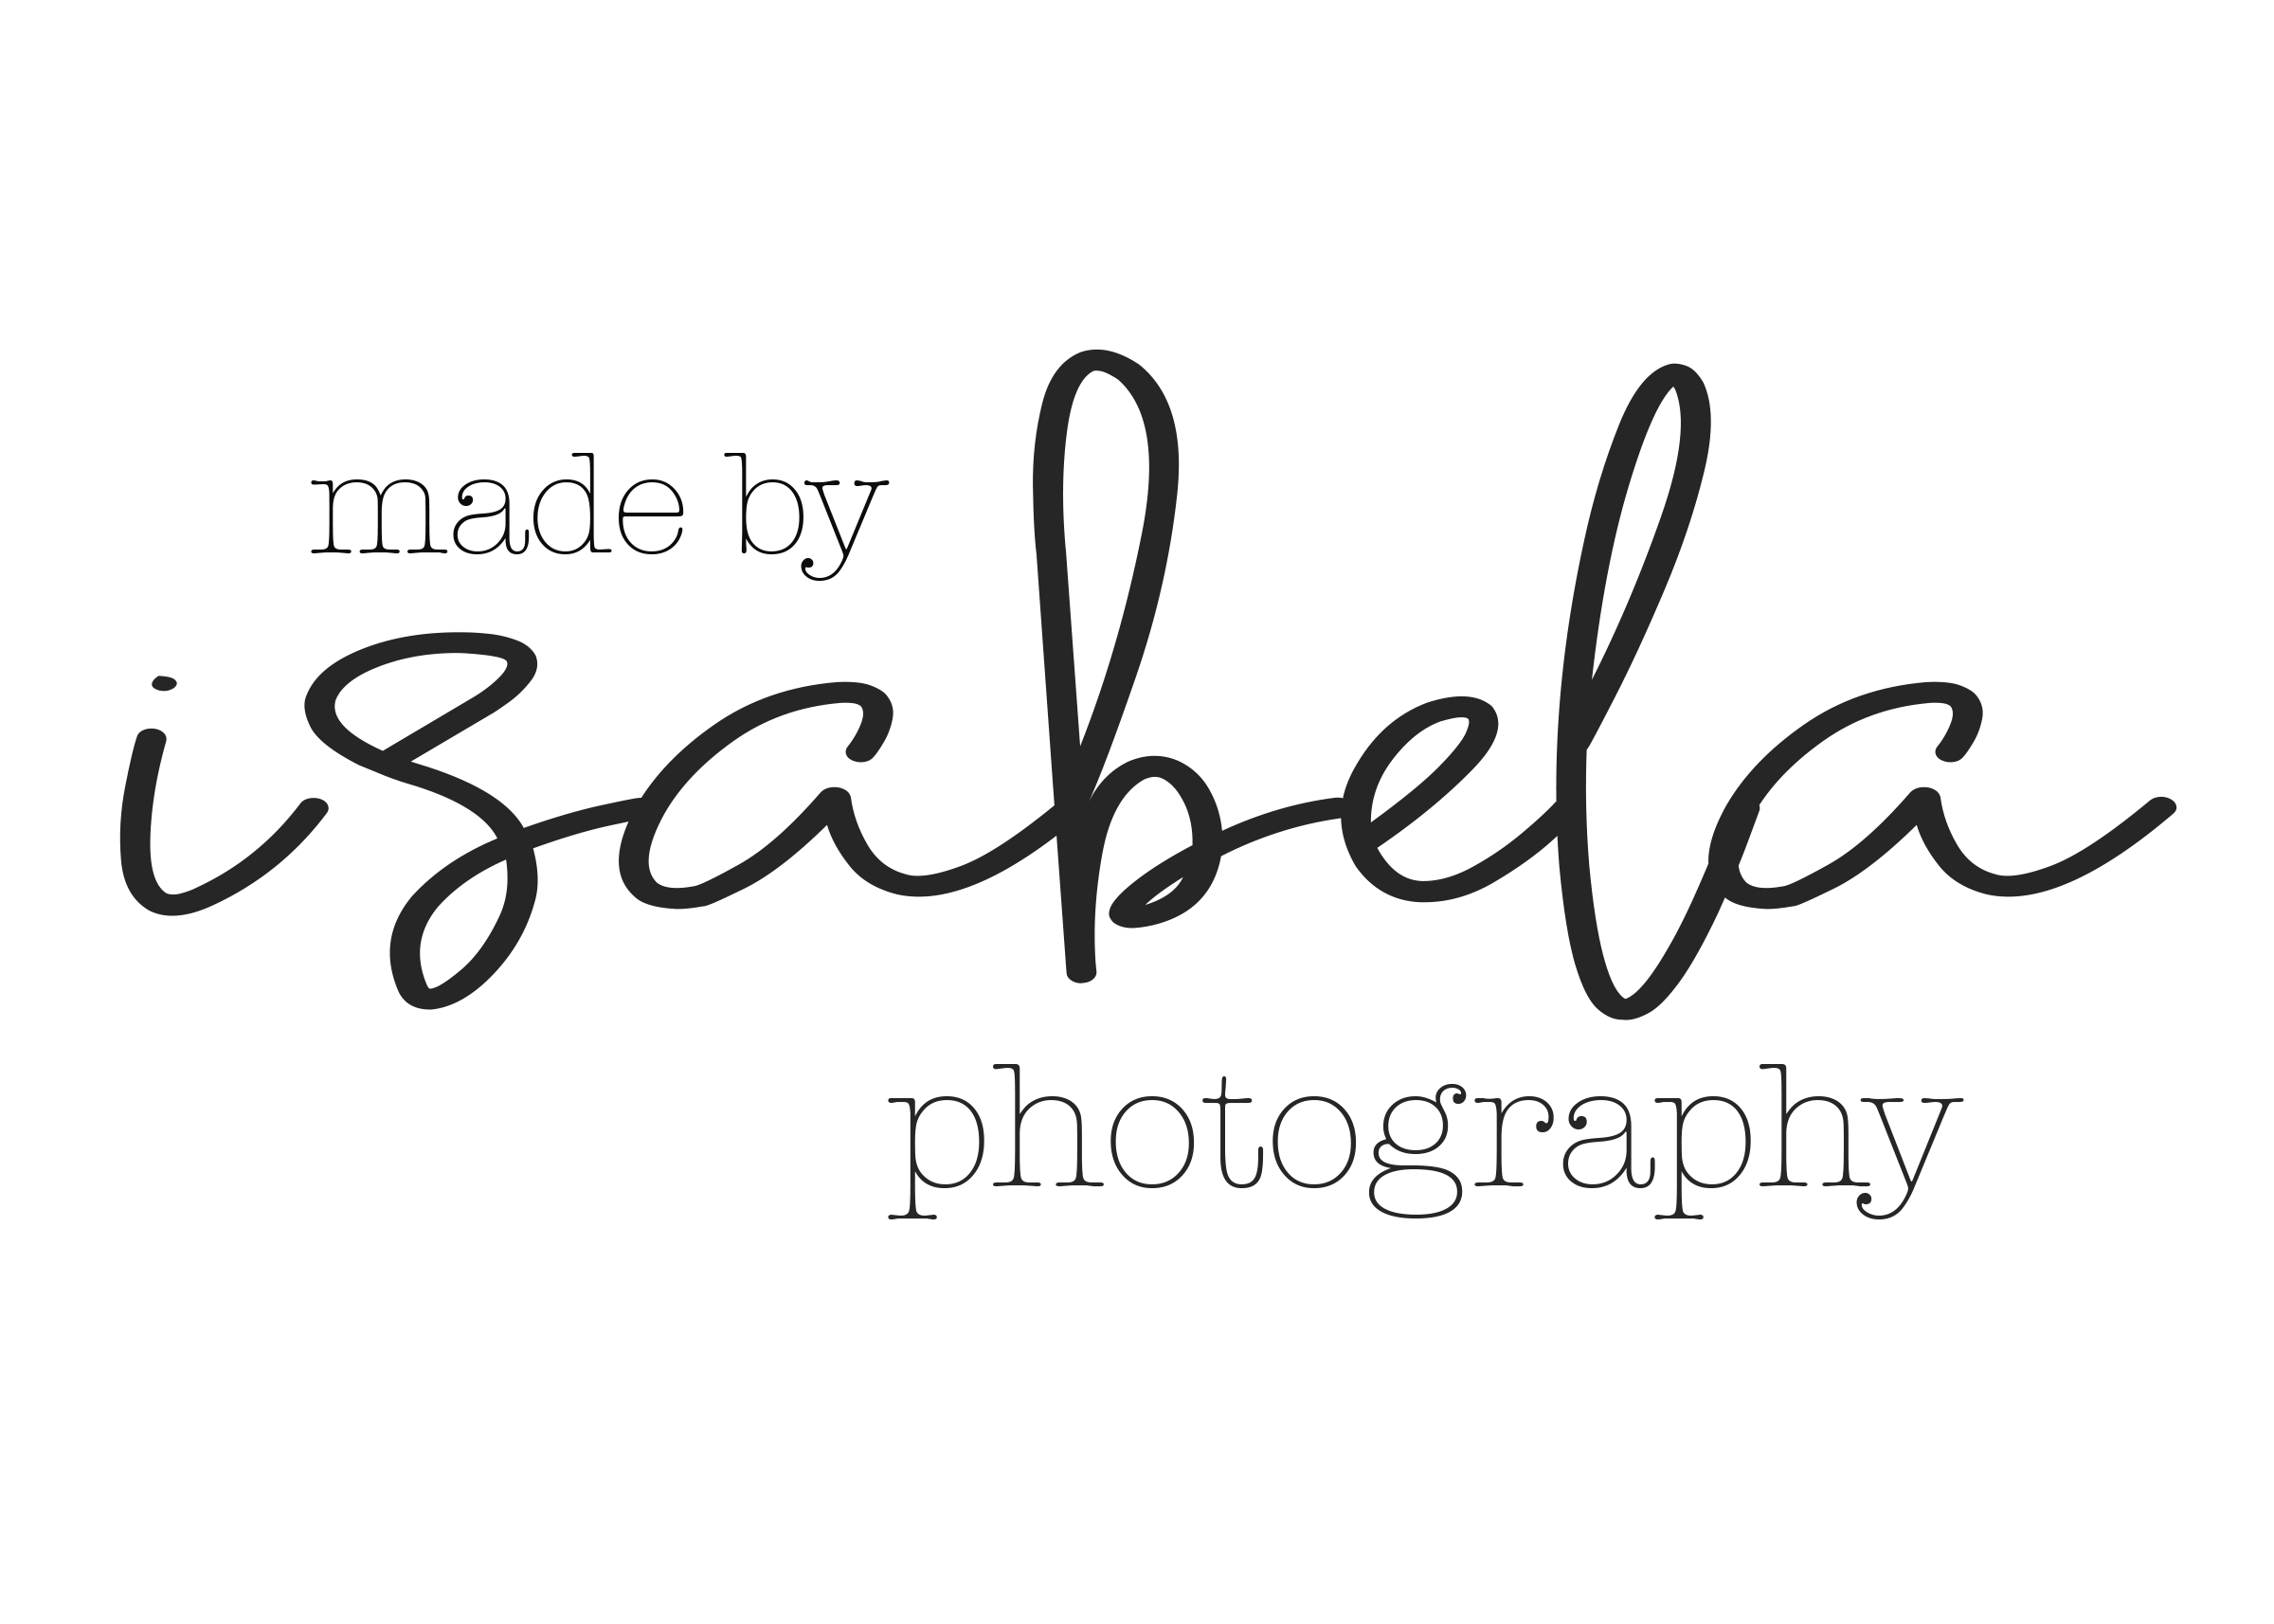 Made By Isabela Photography